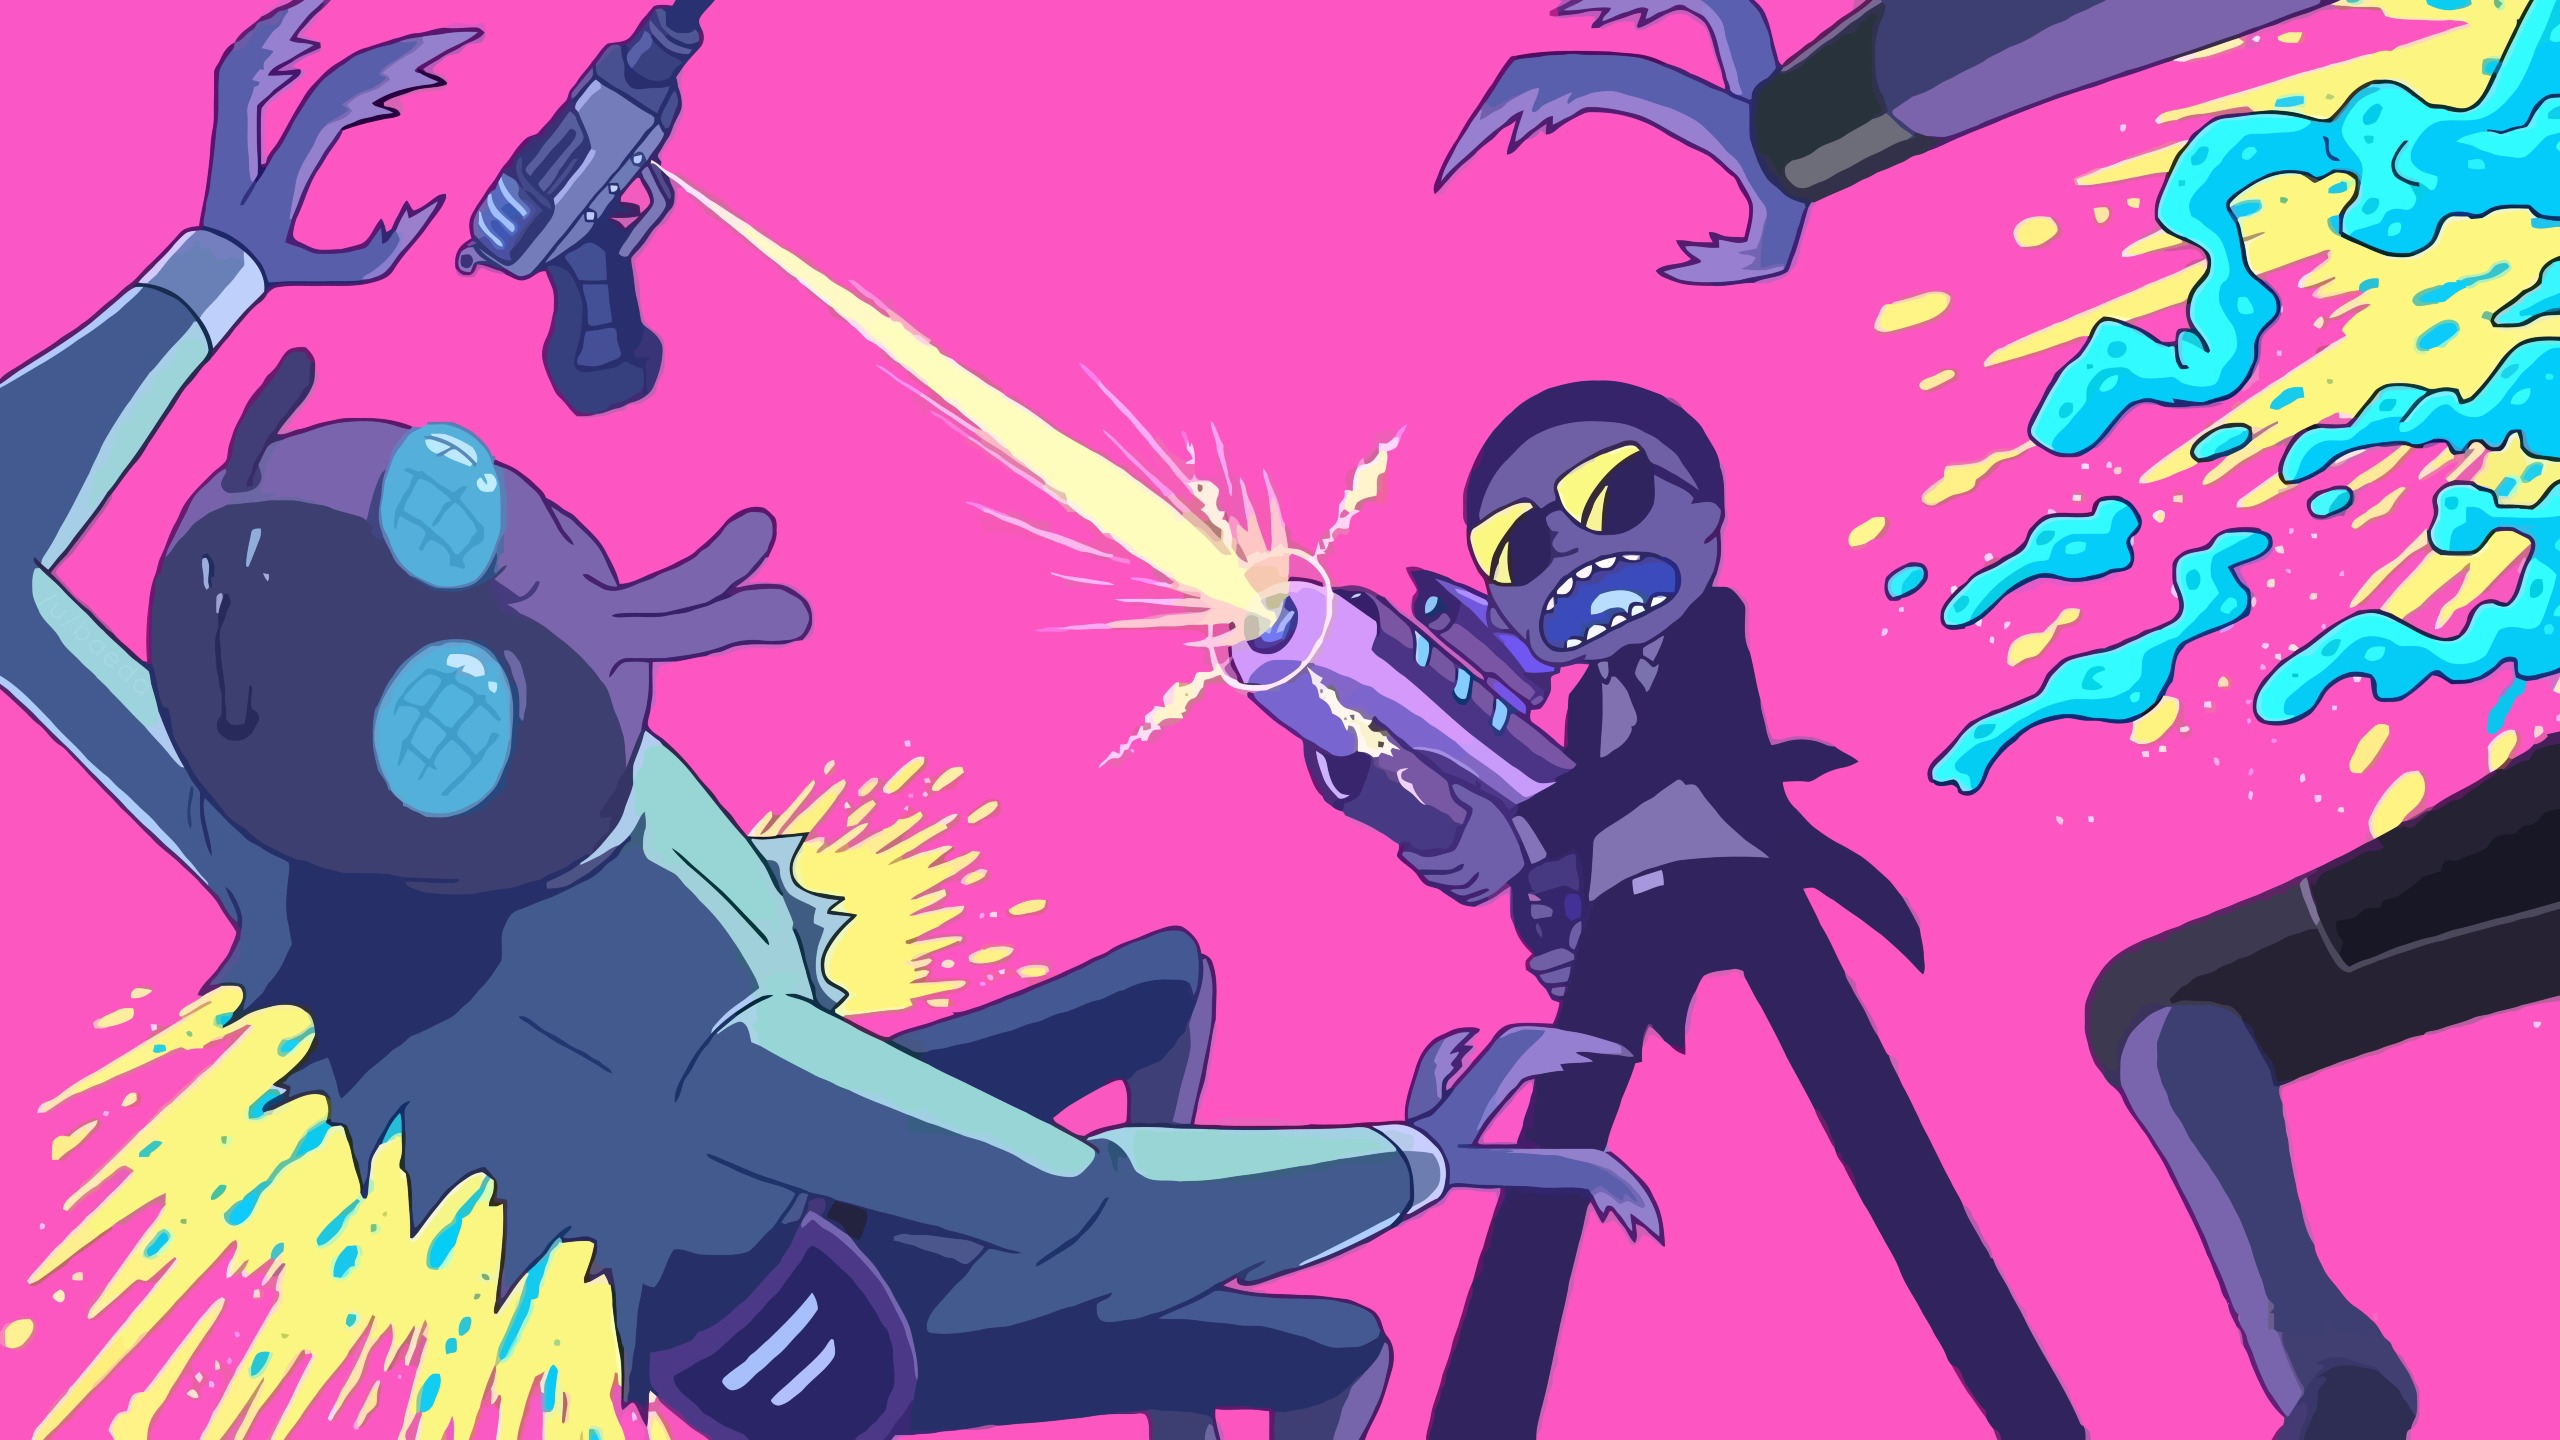 2560x1440 Rick And Morty Fighting With Aliens 1440p Resolution